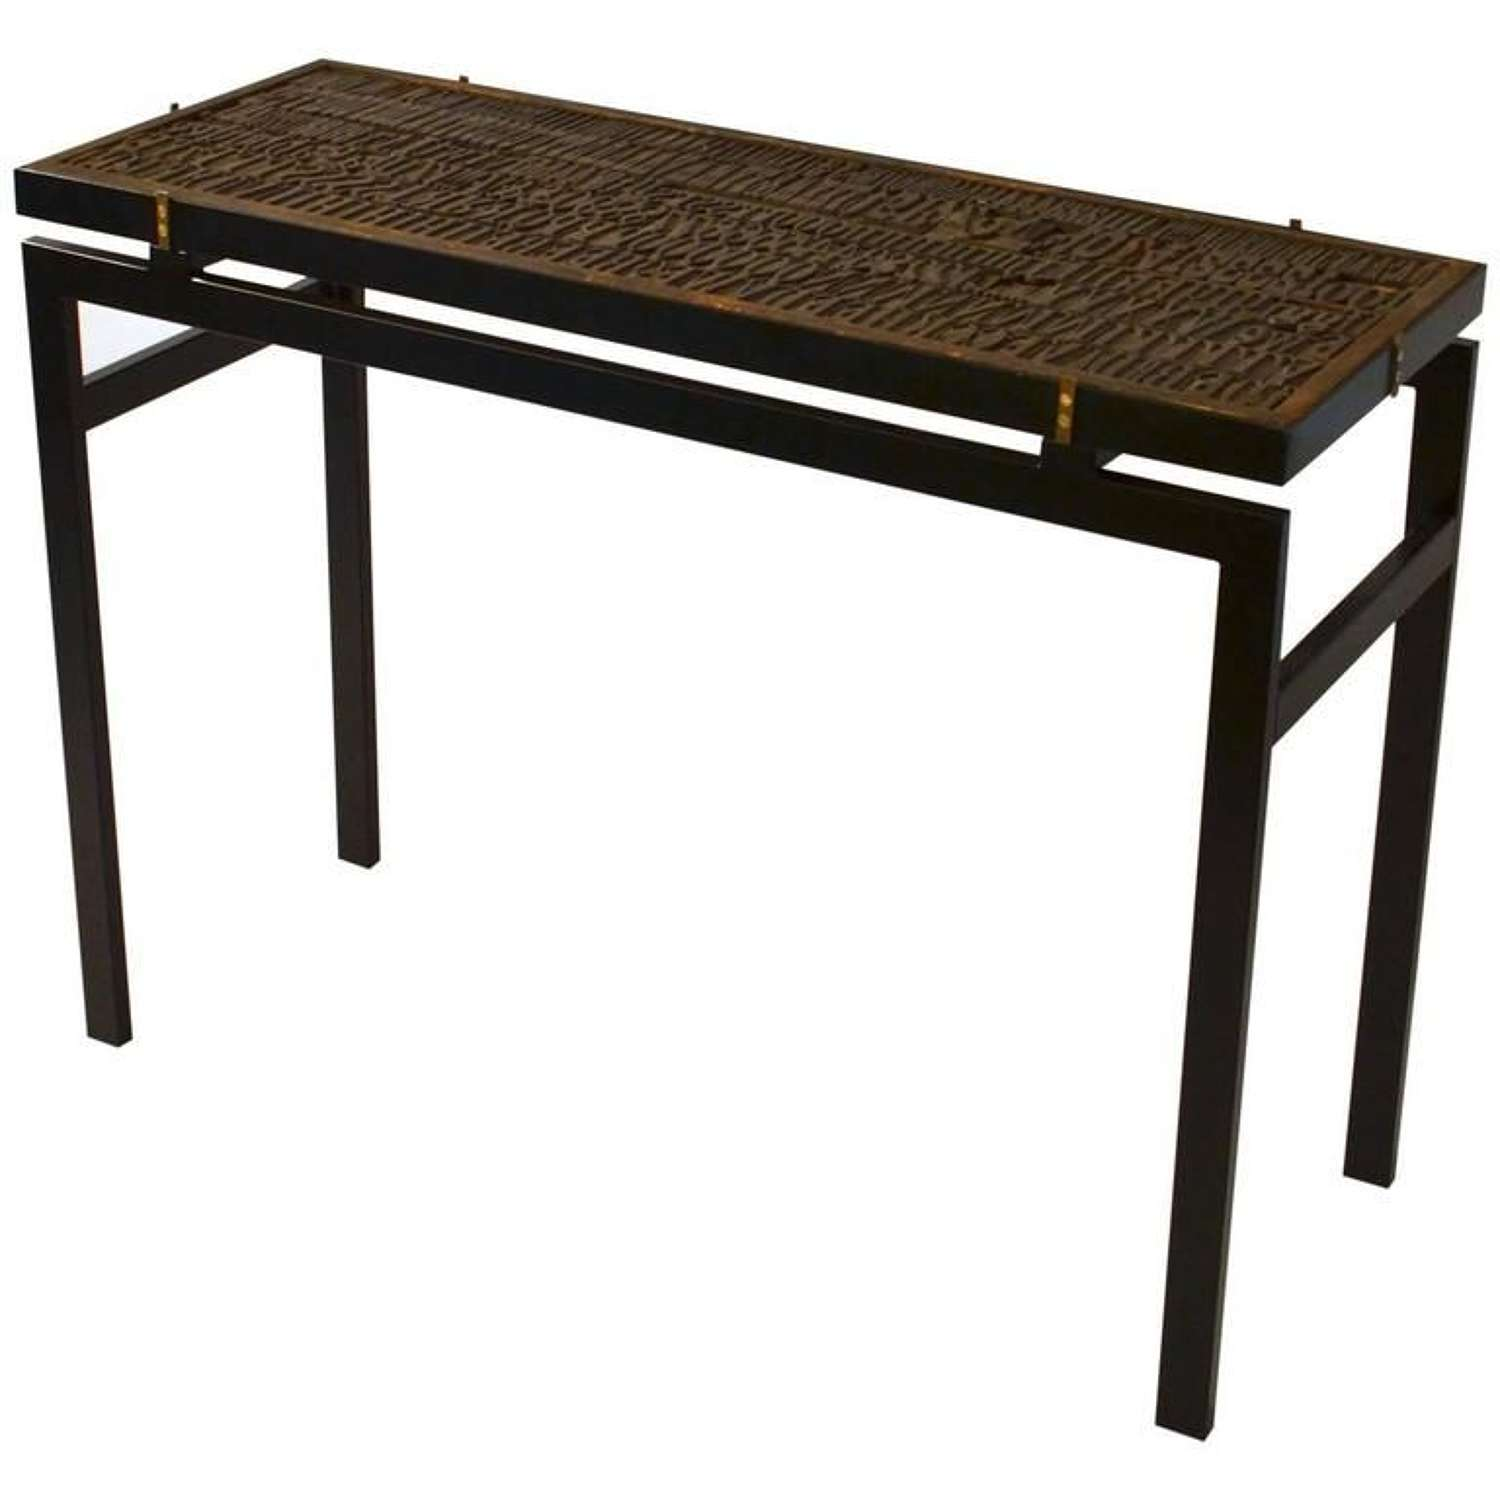 Console Table with Early 20th Century Printing Blocks